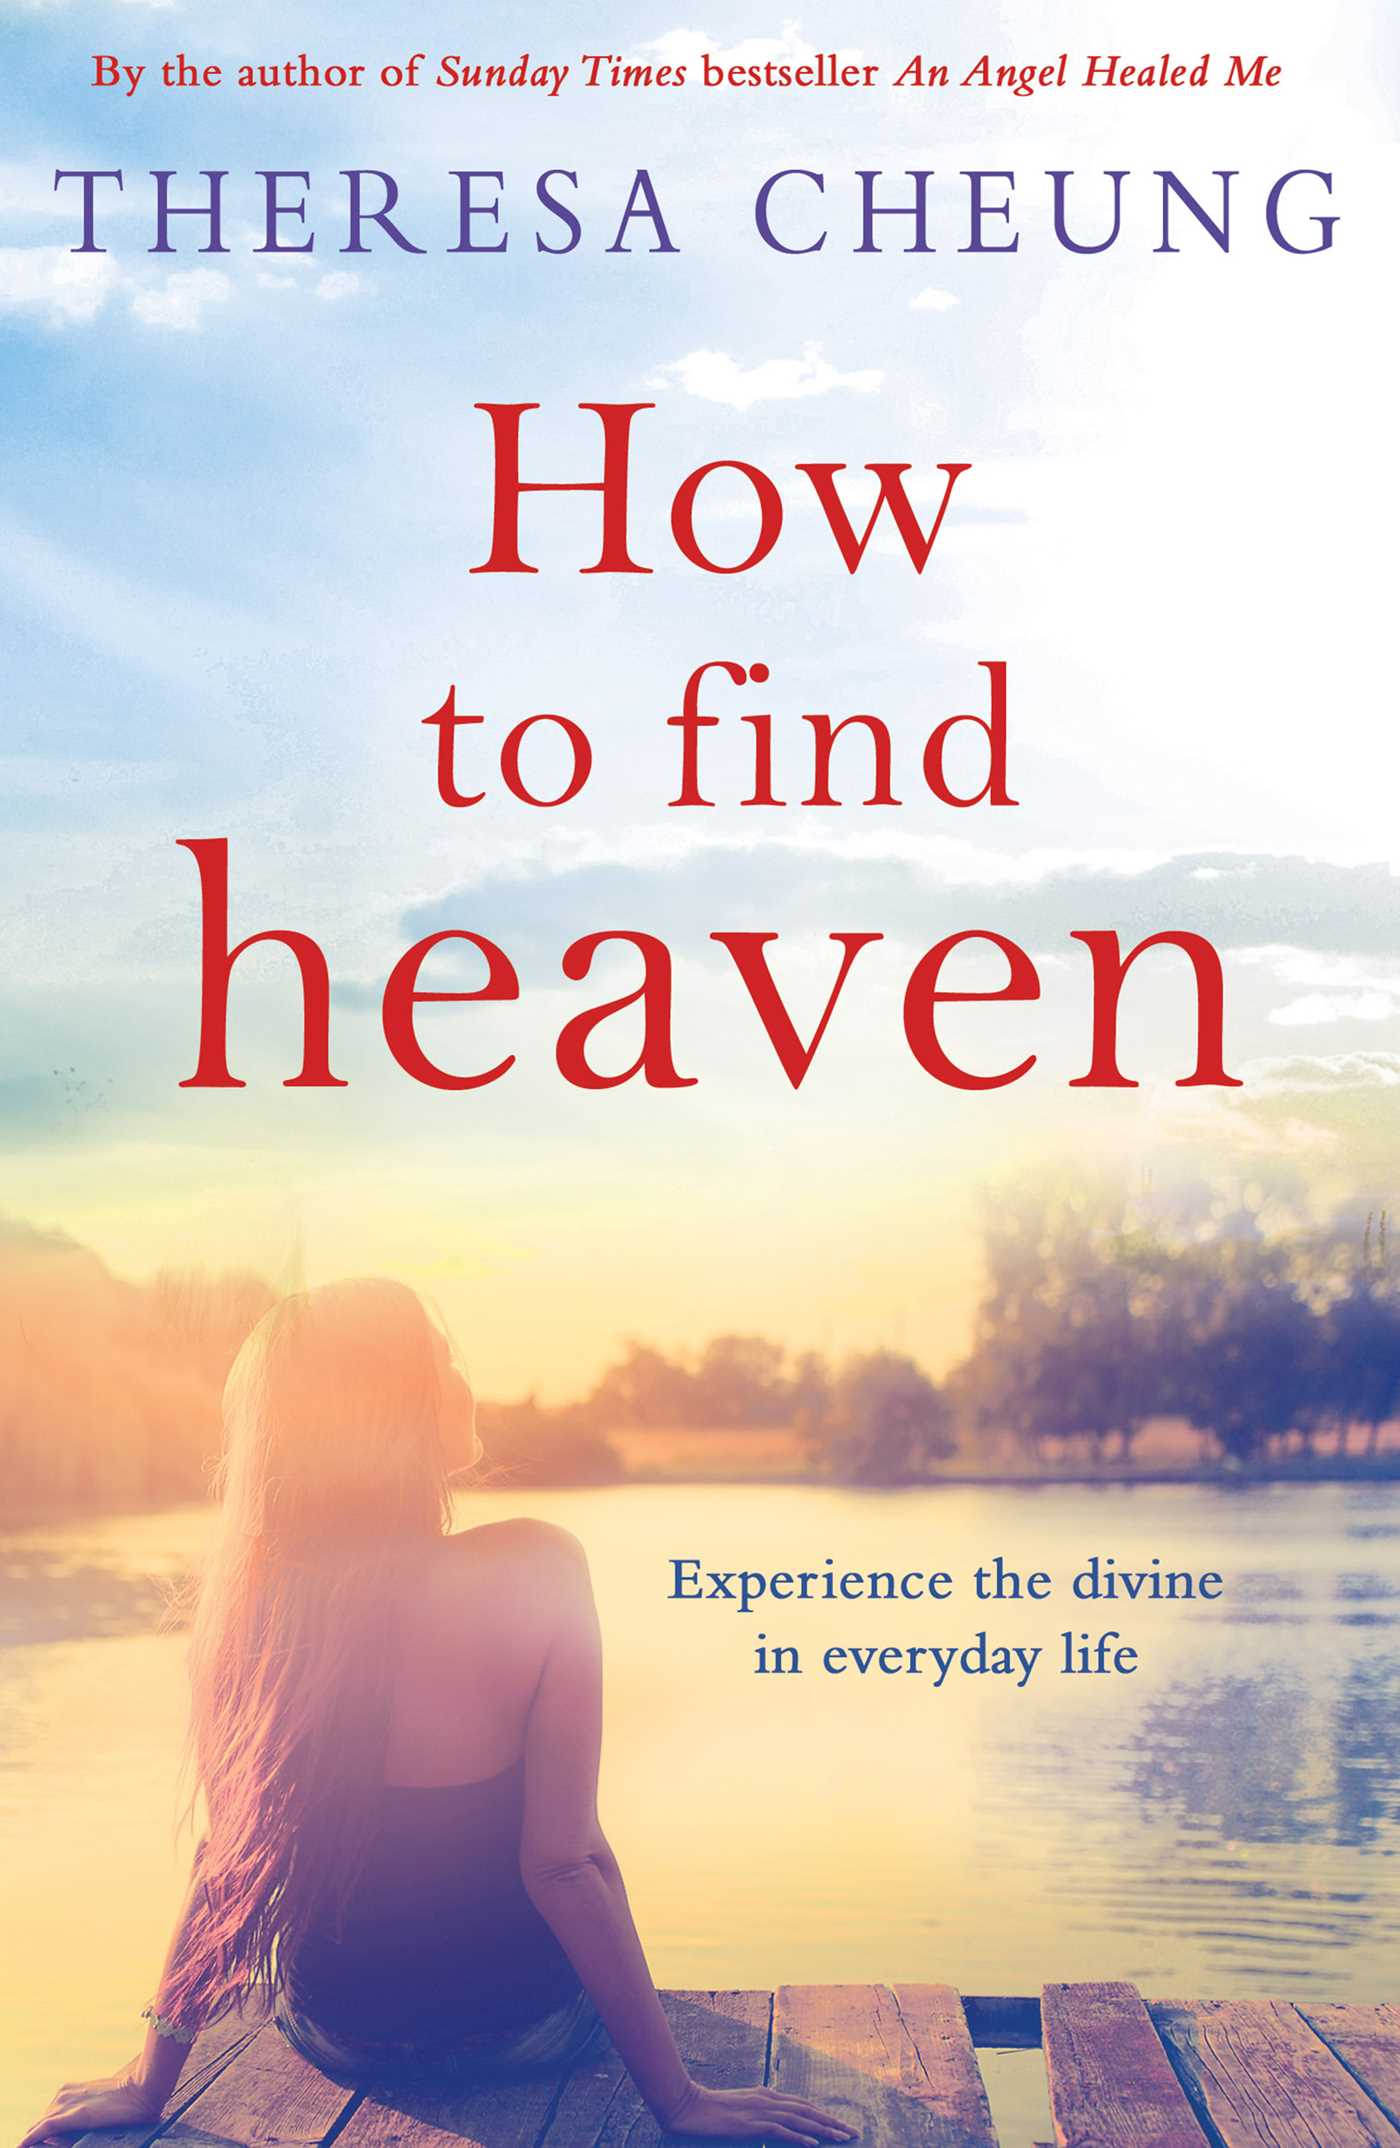 How to find heaven 9781471142840 hr